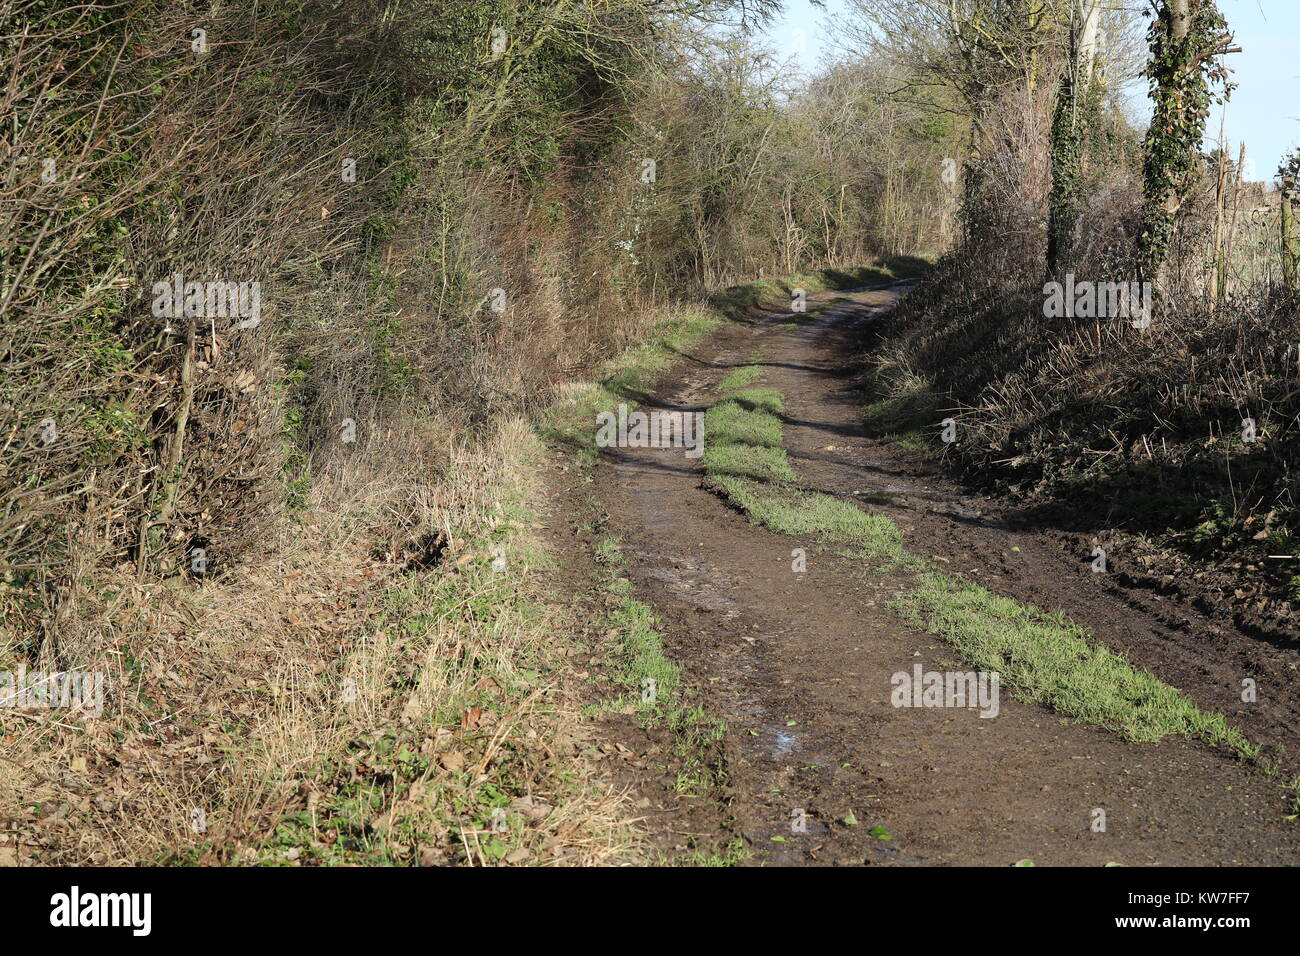 A country lane/bridleway known as 'Milking Lane' in Witney - Stock Image